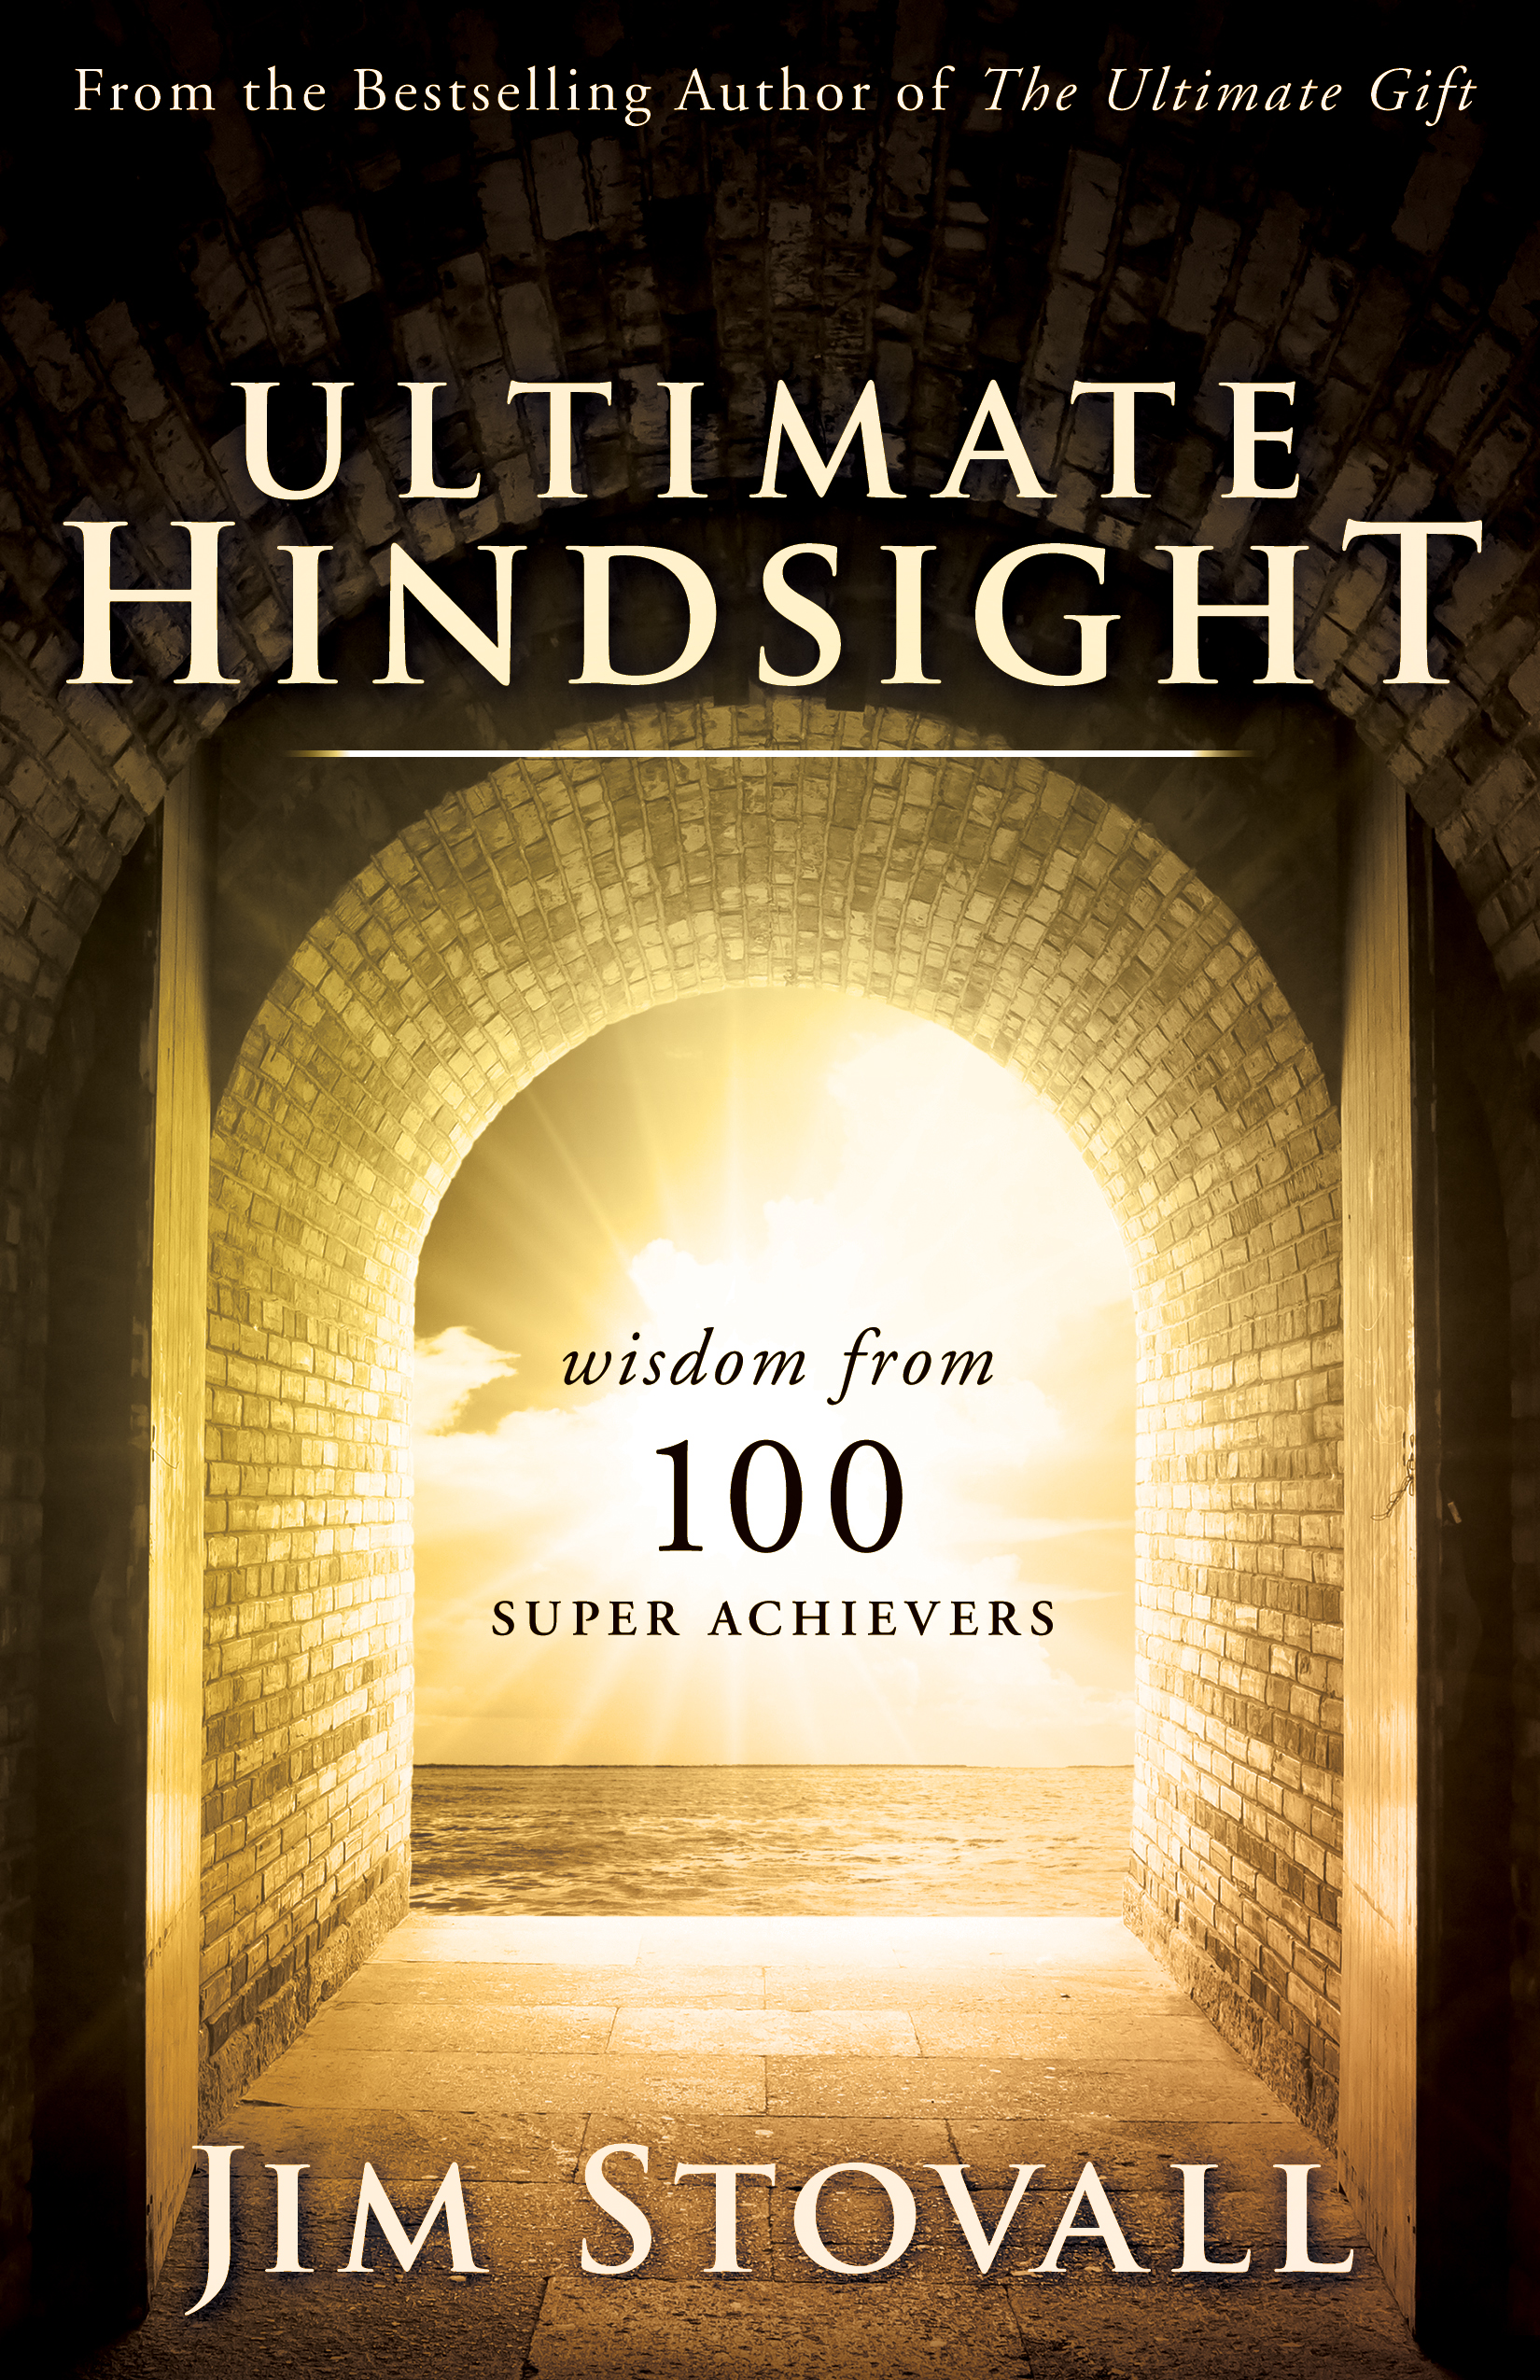 Ultimate Hindsight - Jim Stovall